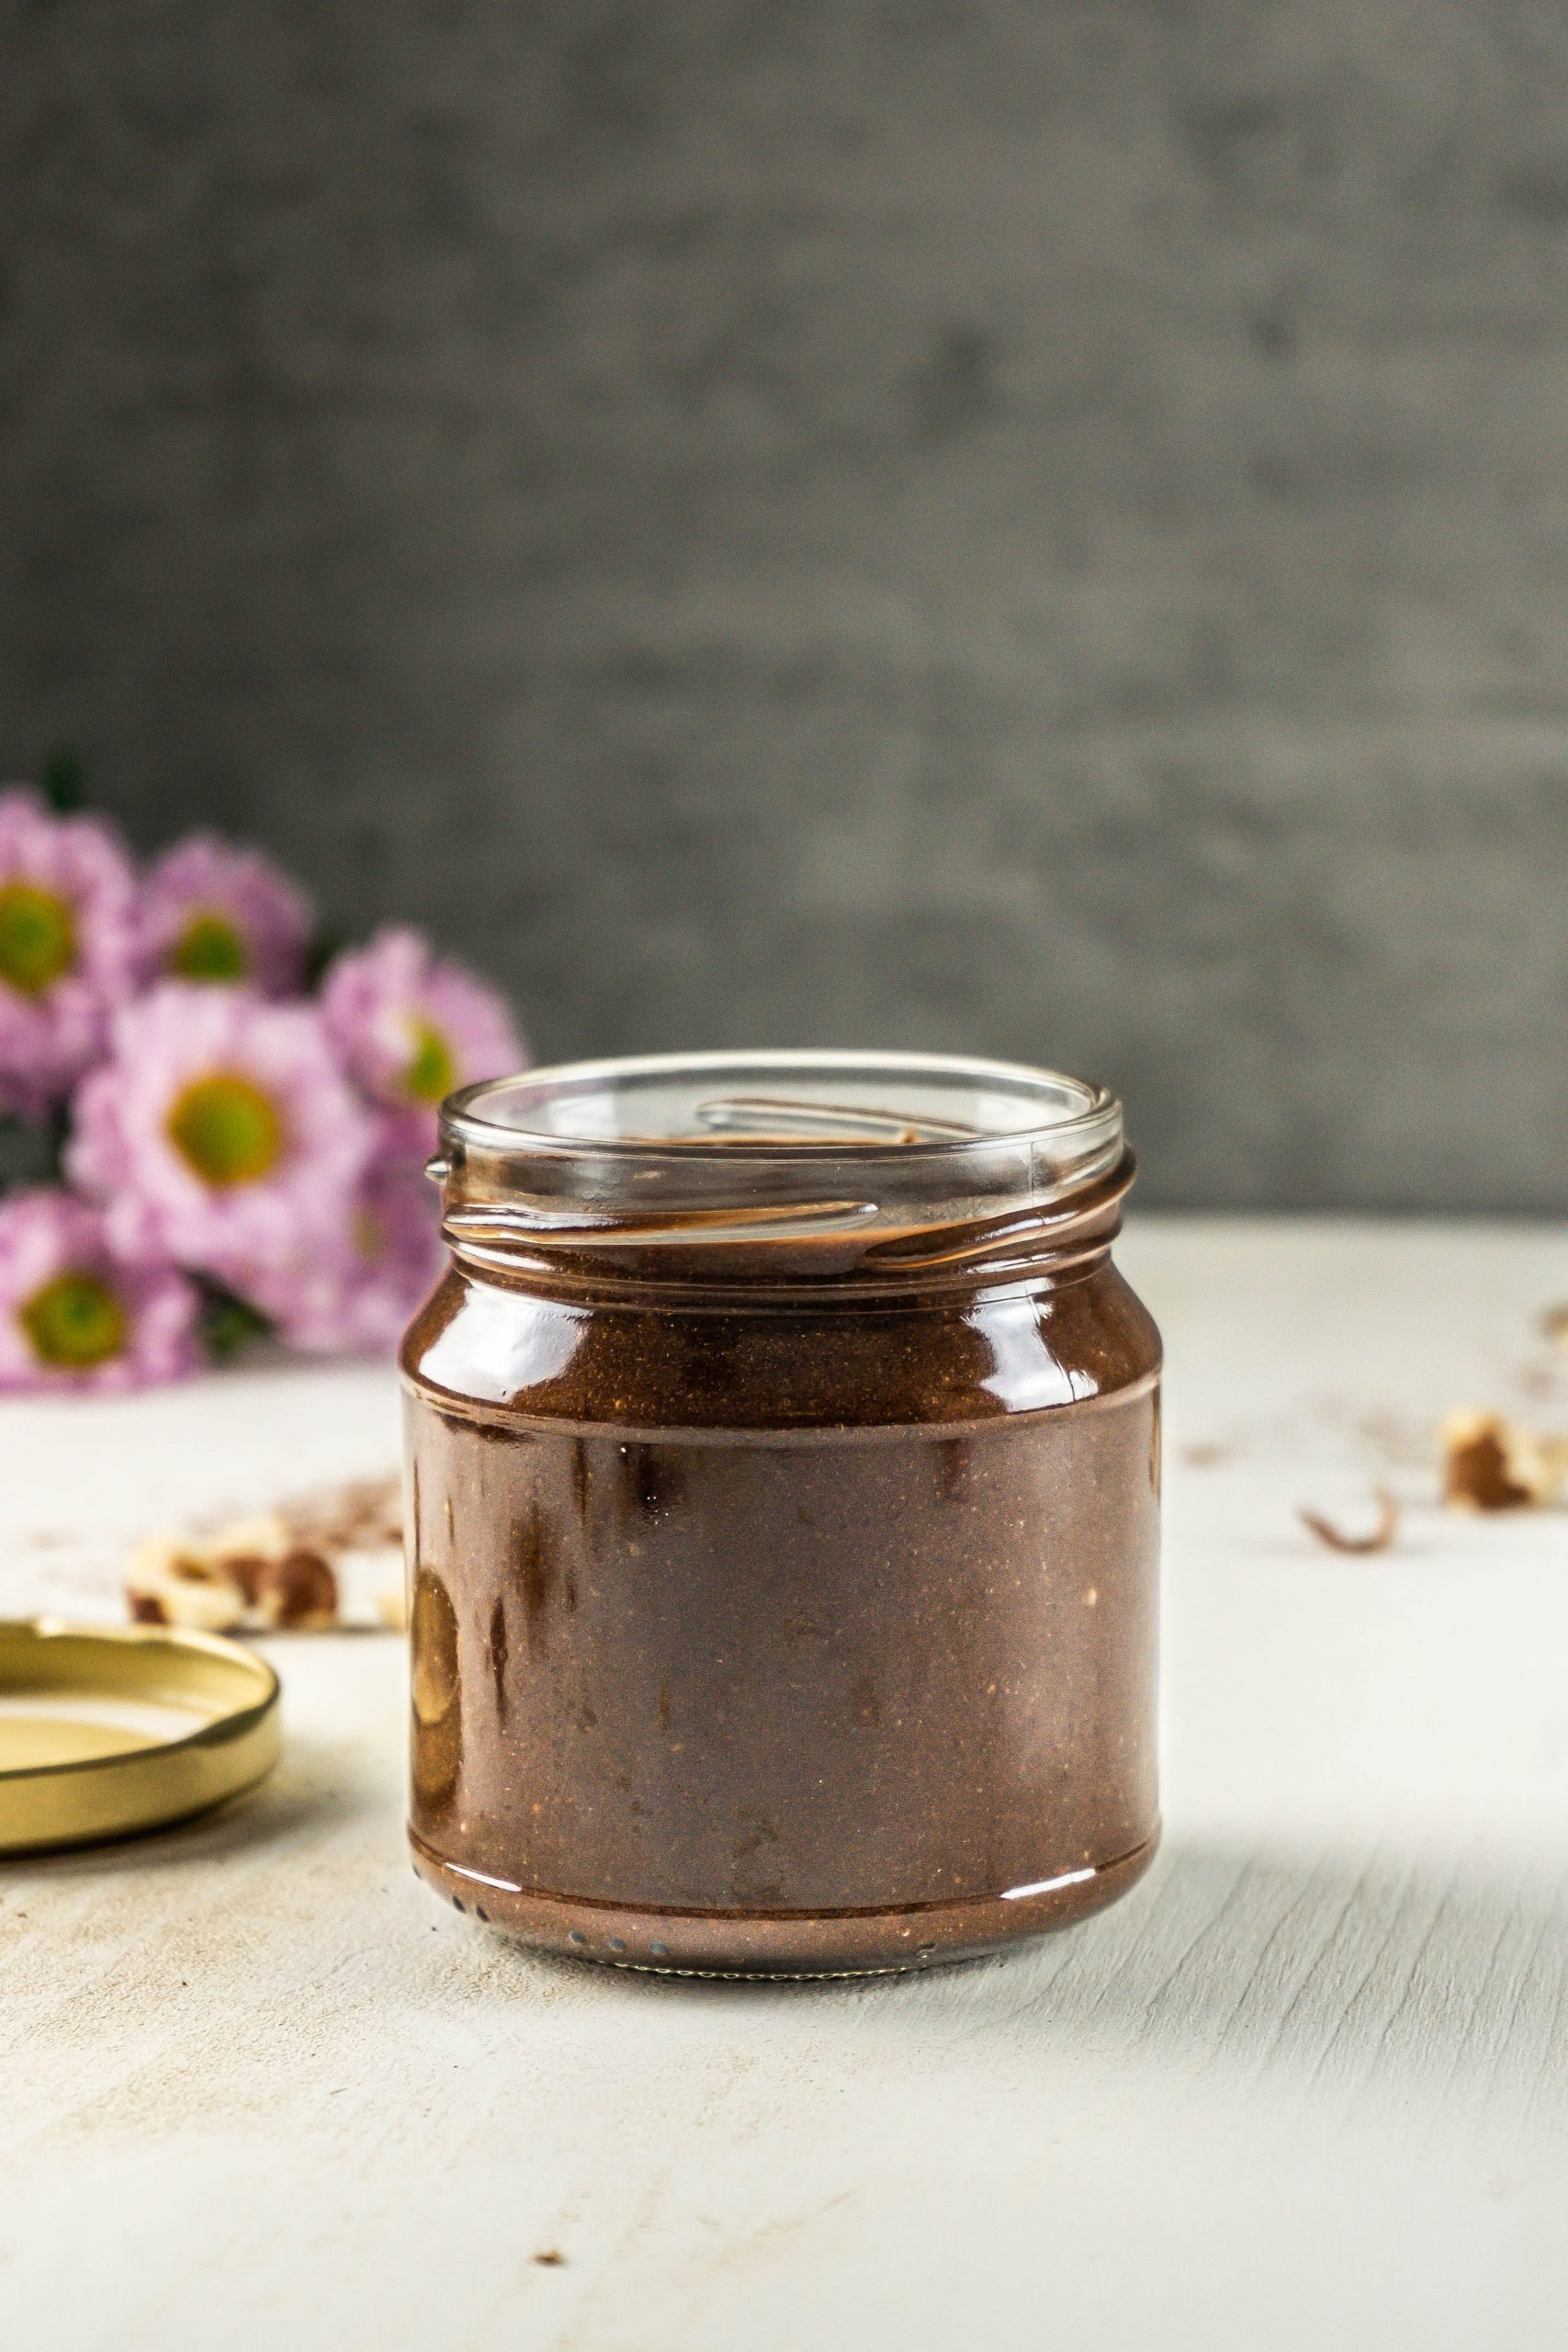 Vegan Chocolate Hazelnut Creme in a glass jar with scattered hazelnuts visible in the background